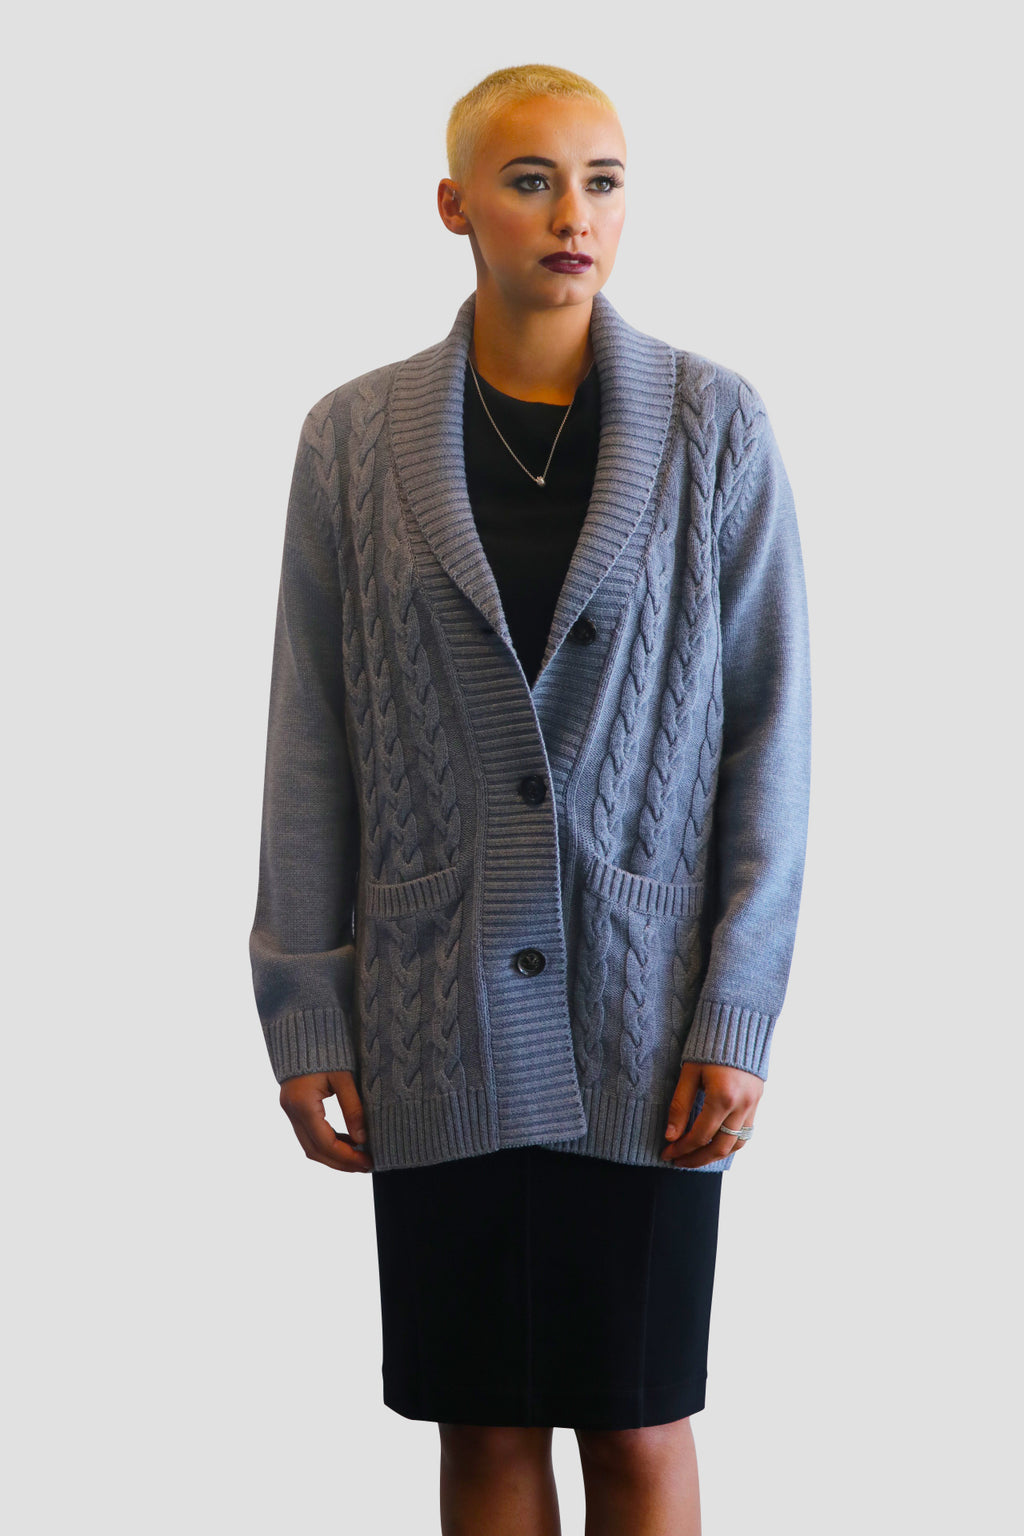 shawl collar GRAY CABLE KNIT WOOL sILK CARDIGAN Heavy knit wool-silk cardigan with pockets for women. Style this beautiful Emma Chai cardigan for a day to night look sweater pockets smartphones emma chai @emmachaiofficial @mo2theem